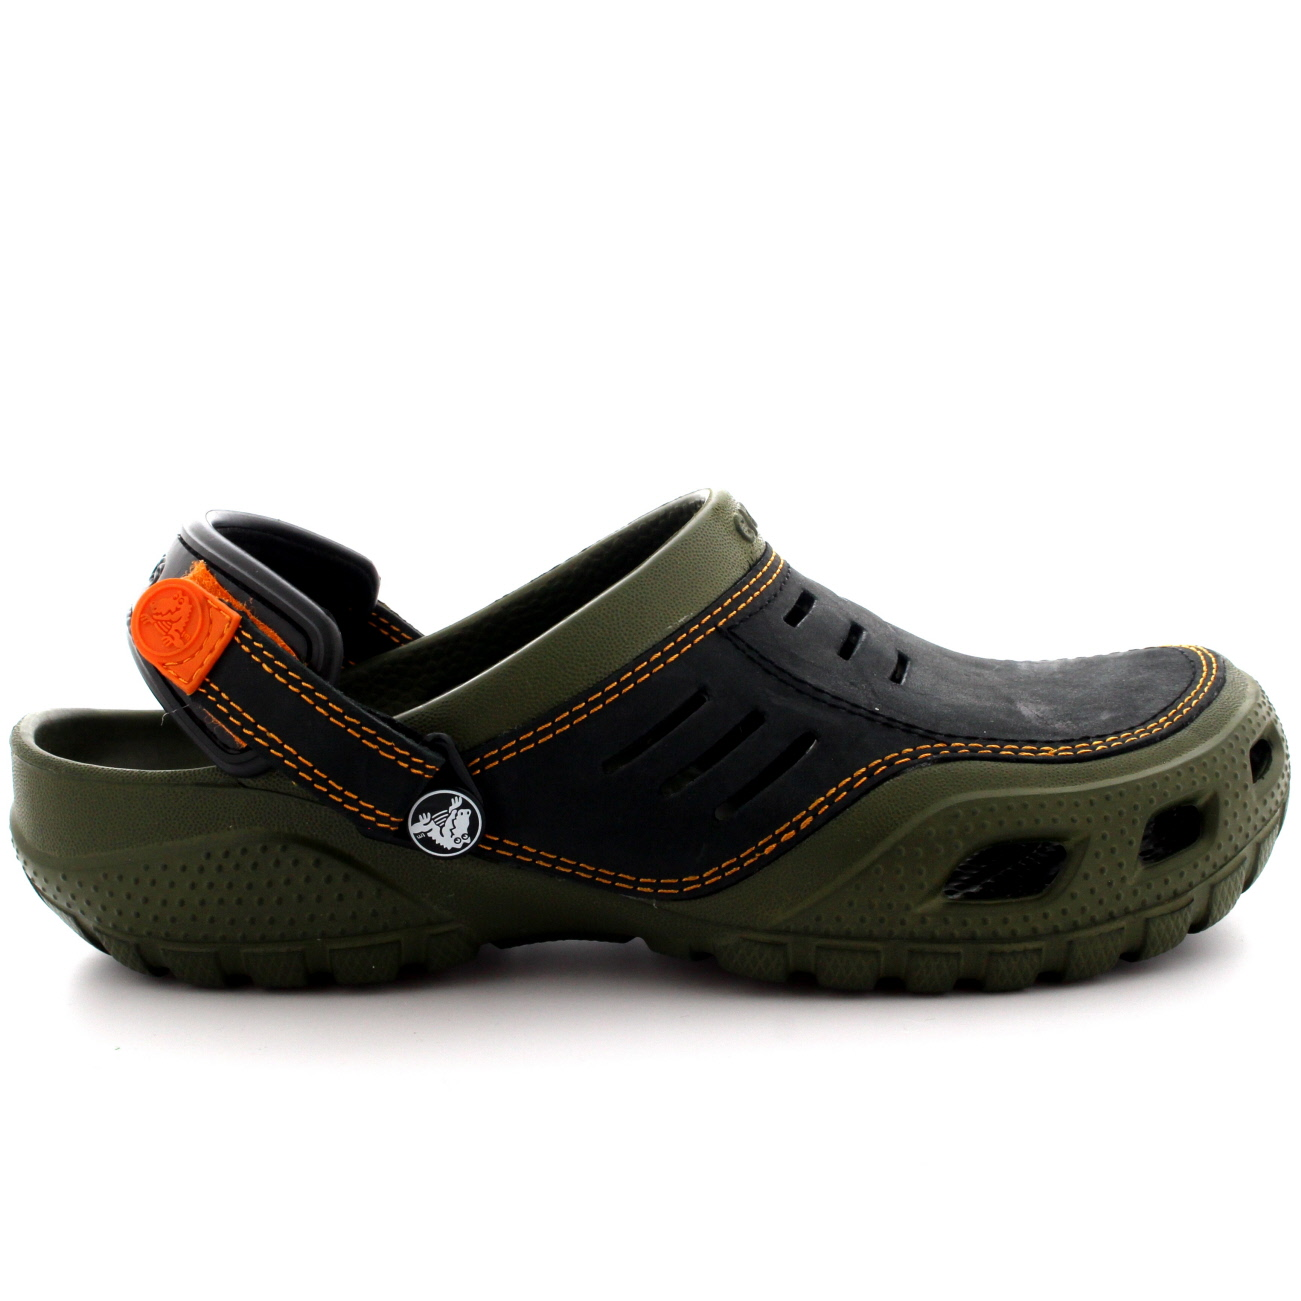 herren crocs yukon sport schl pfen leicht leder clogs sandalen schuhe eu 36 50 ebay. Black Bedroom Furniture Sets. Home Design Ideas